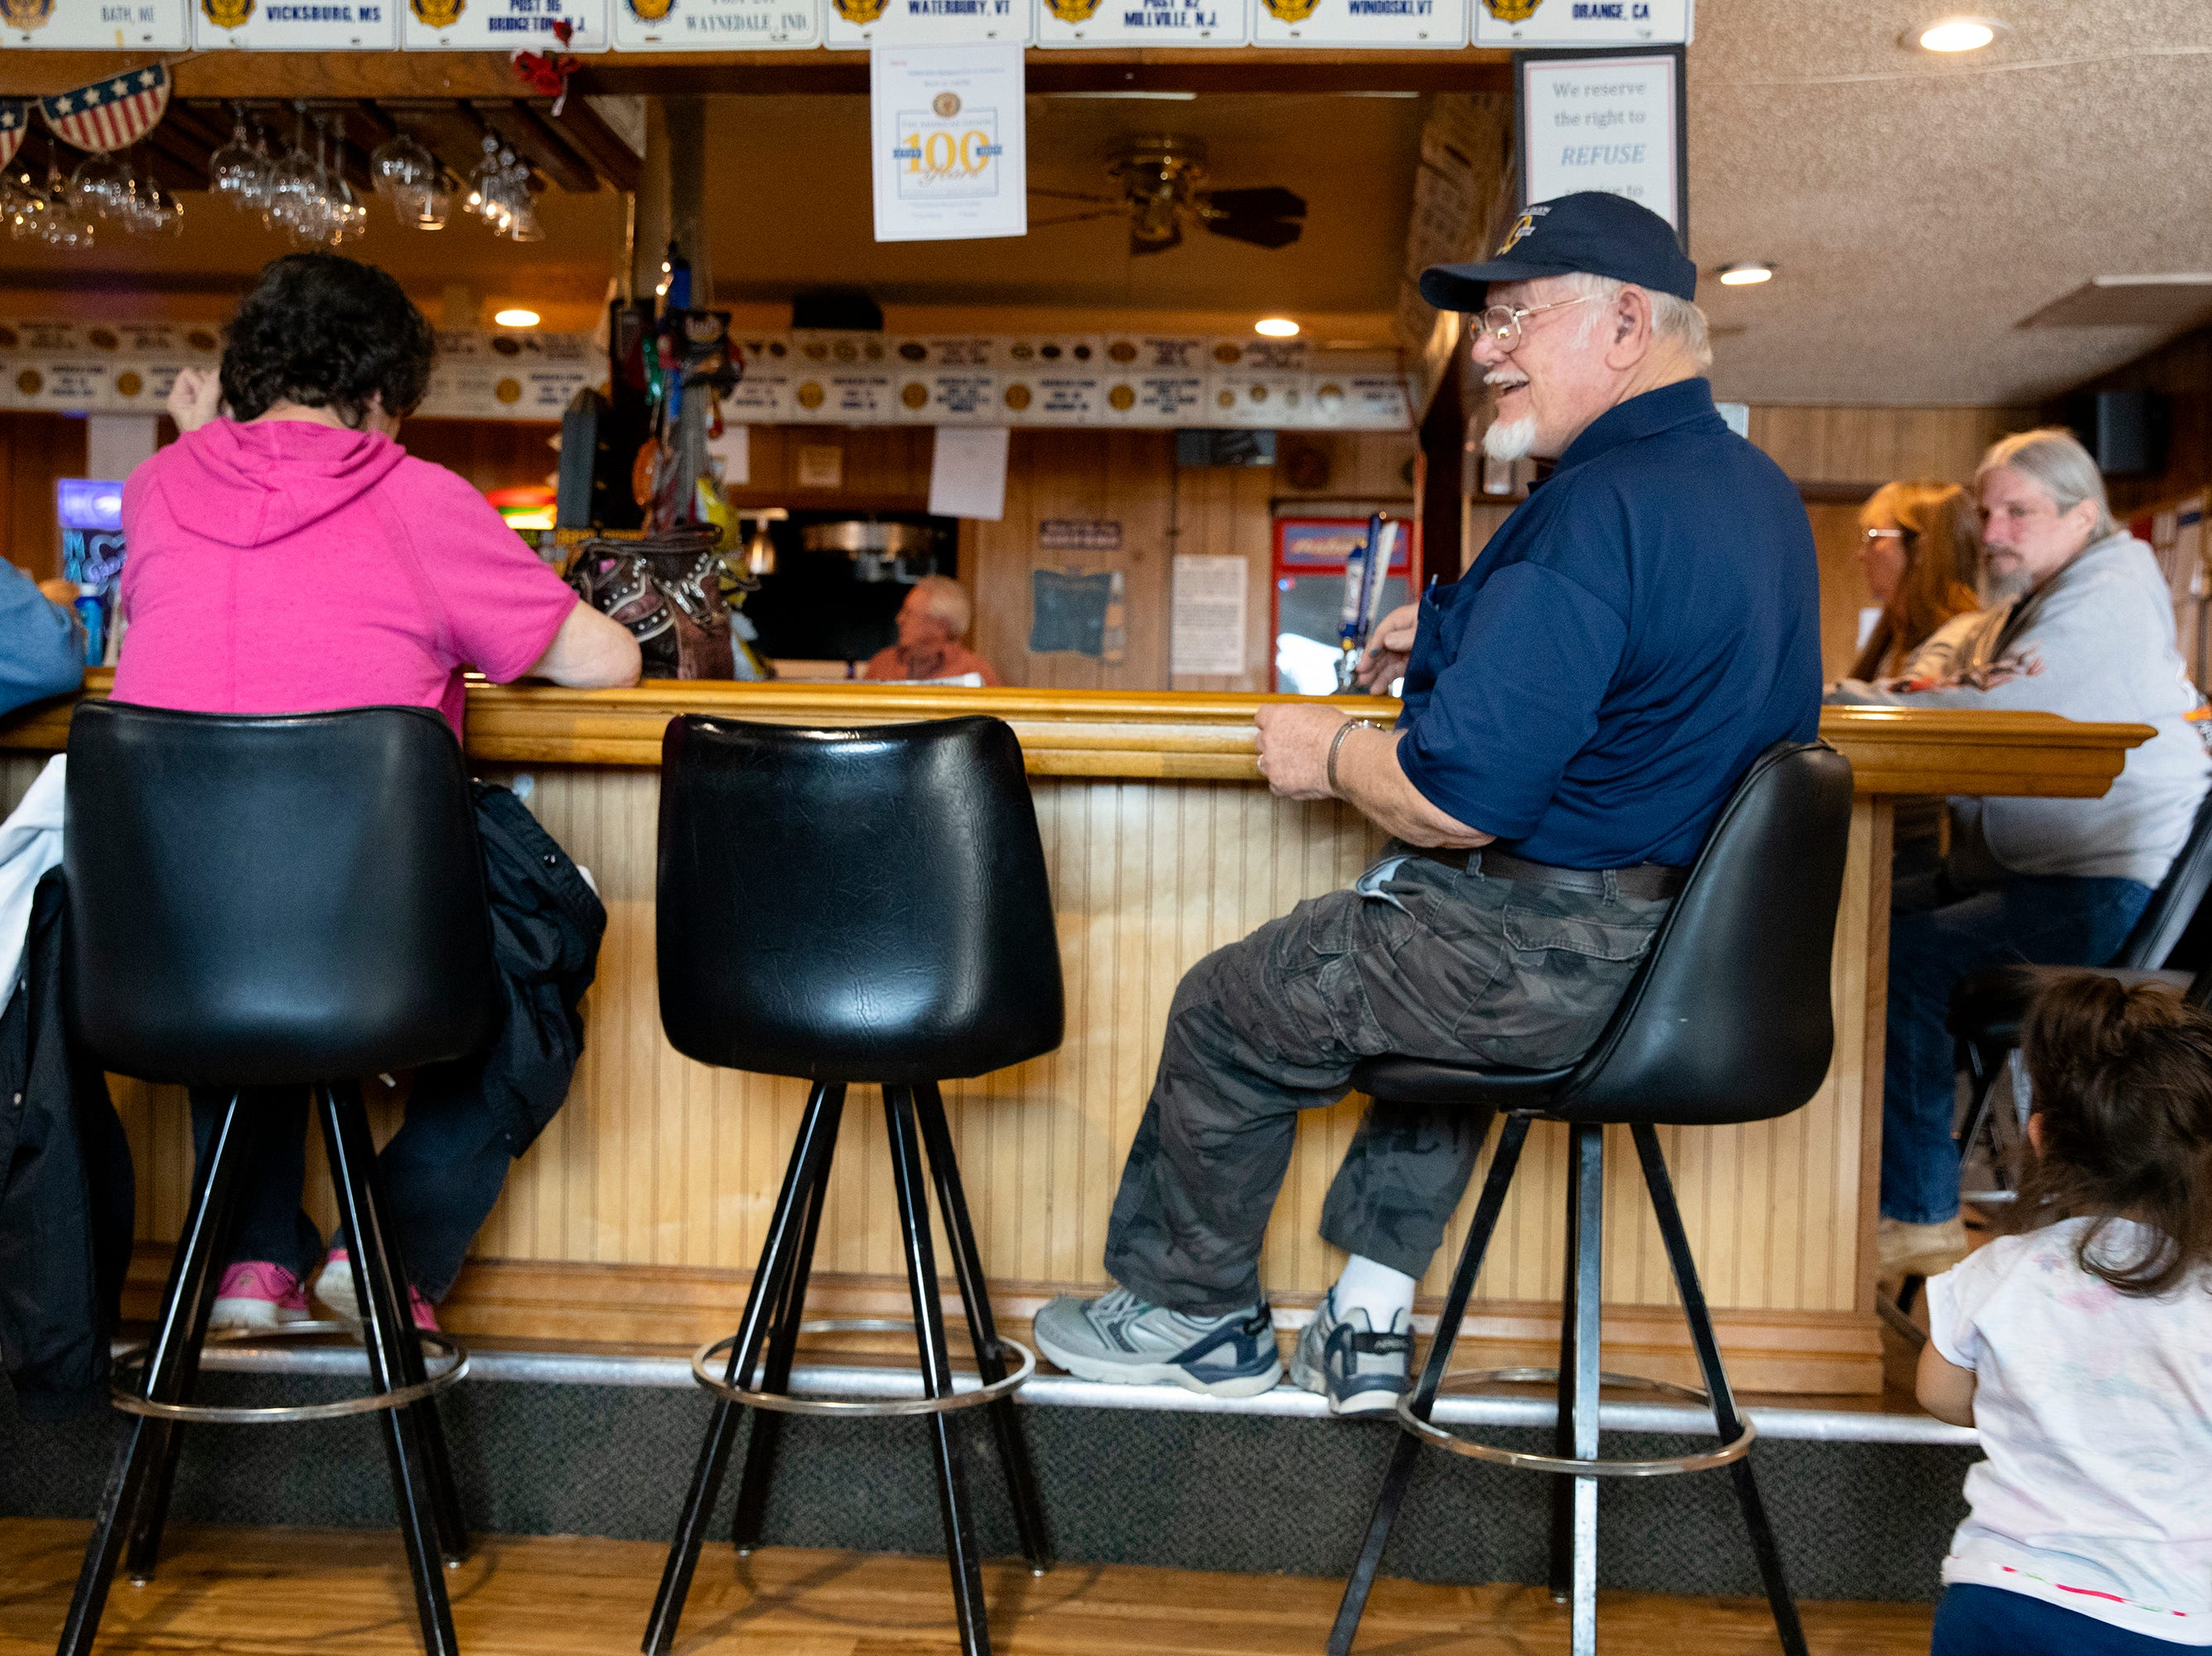 Post Commander Dwight Miles sits at the bar during Sunday afternoon bingo at the George Beach Post No. 4 of the American Legion on March 10.